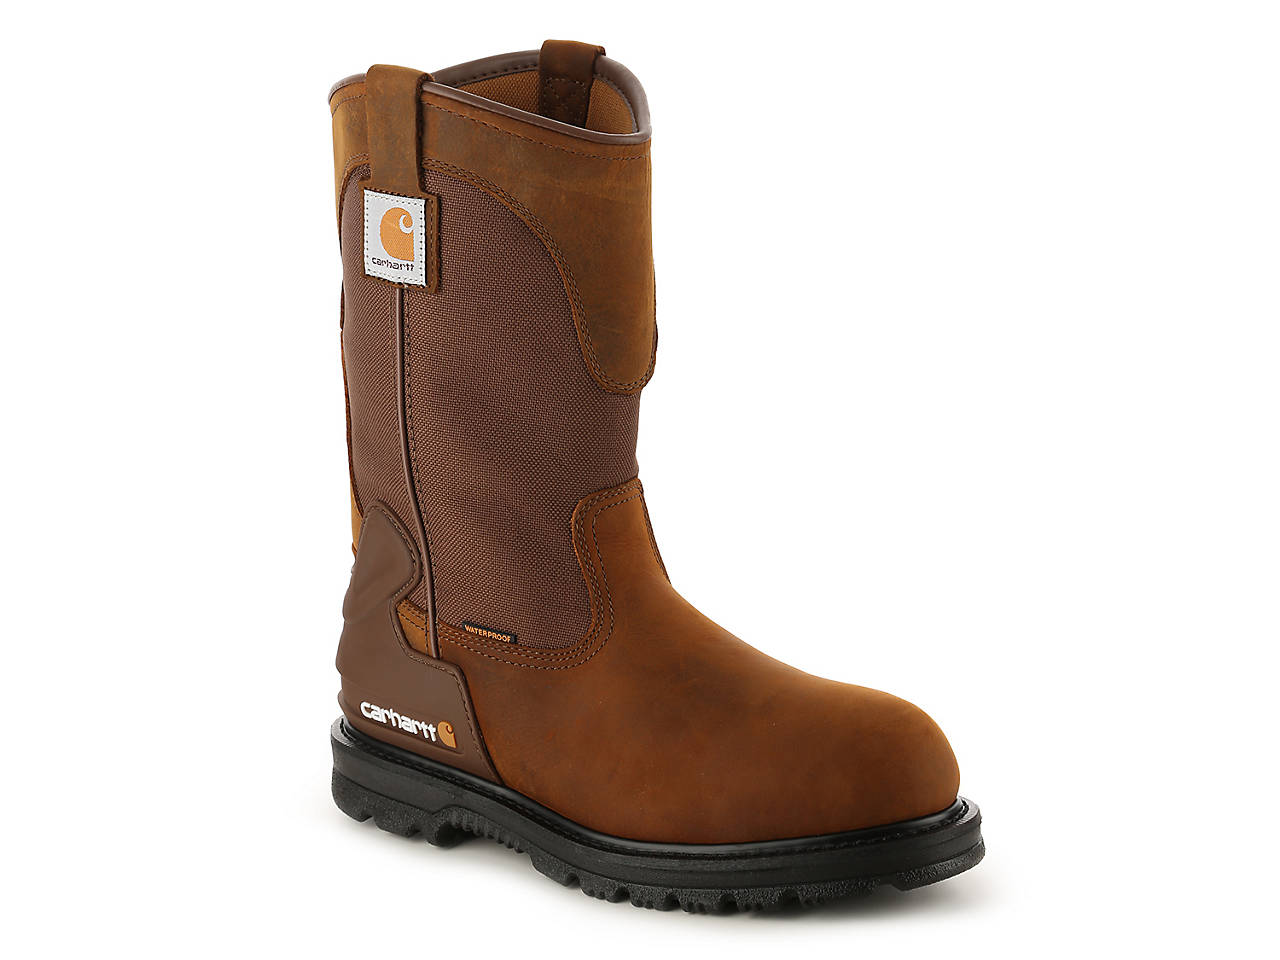 ce7d7ec6c2a 11-inch Bison Work Boot